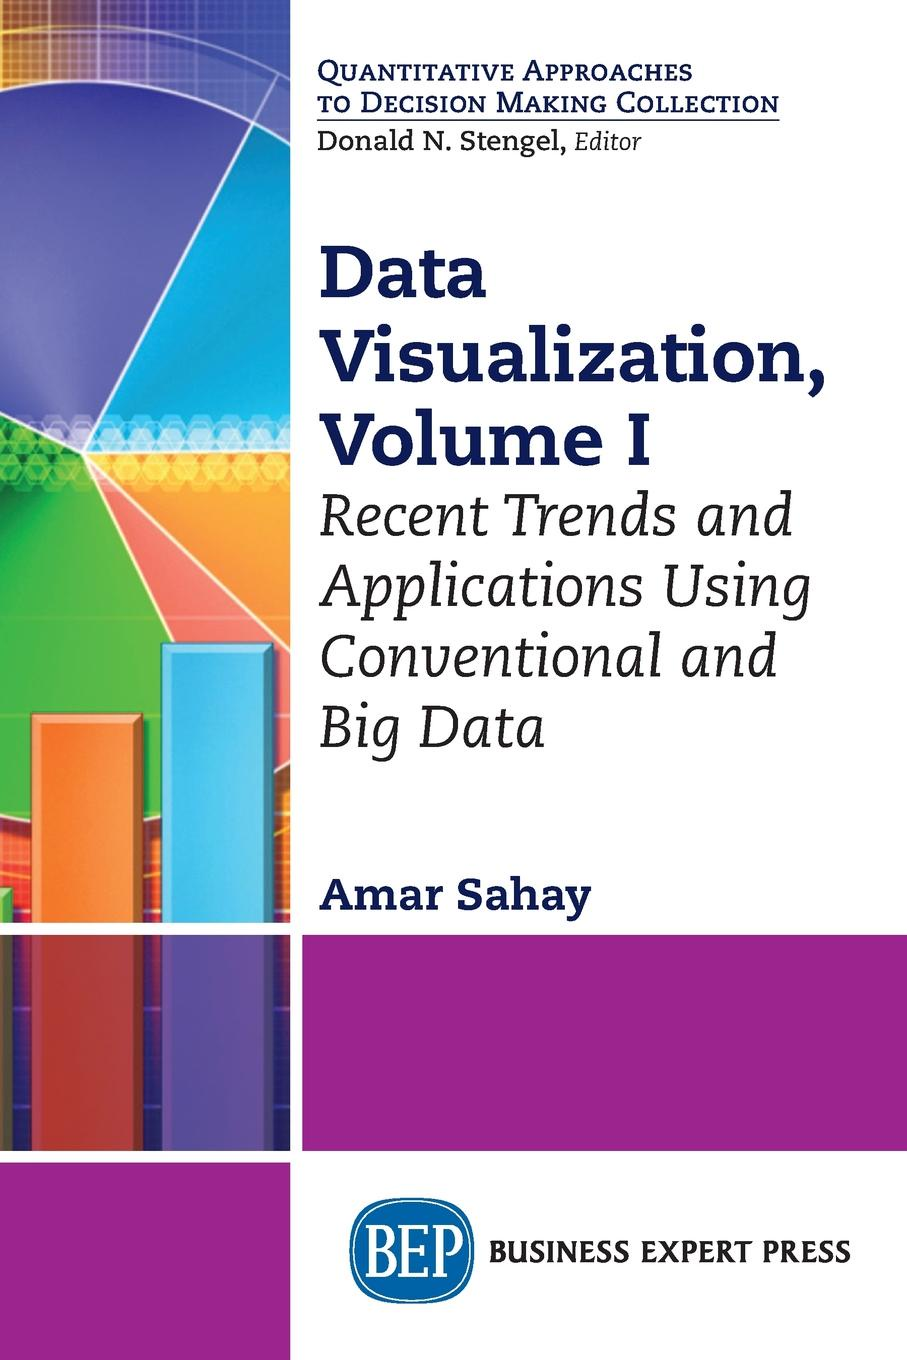 Amar Sahay Data Visualization, Volume I. Recent Trends and Applications Using Conventional and Big Data csaba ortutay molecular data analysis using r